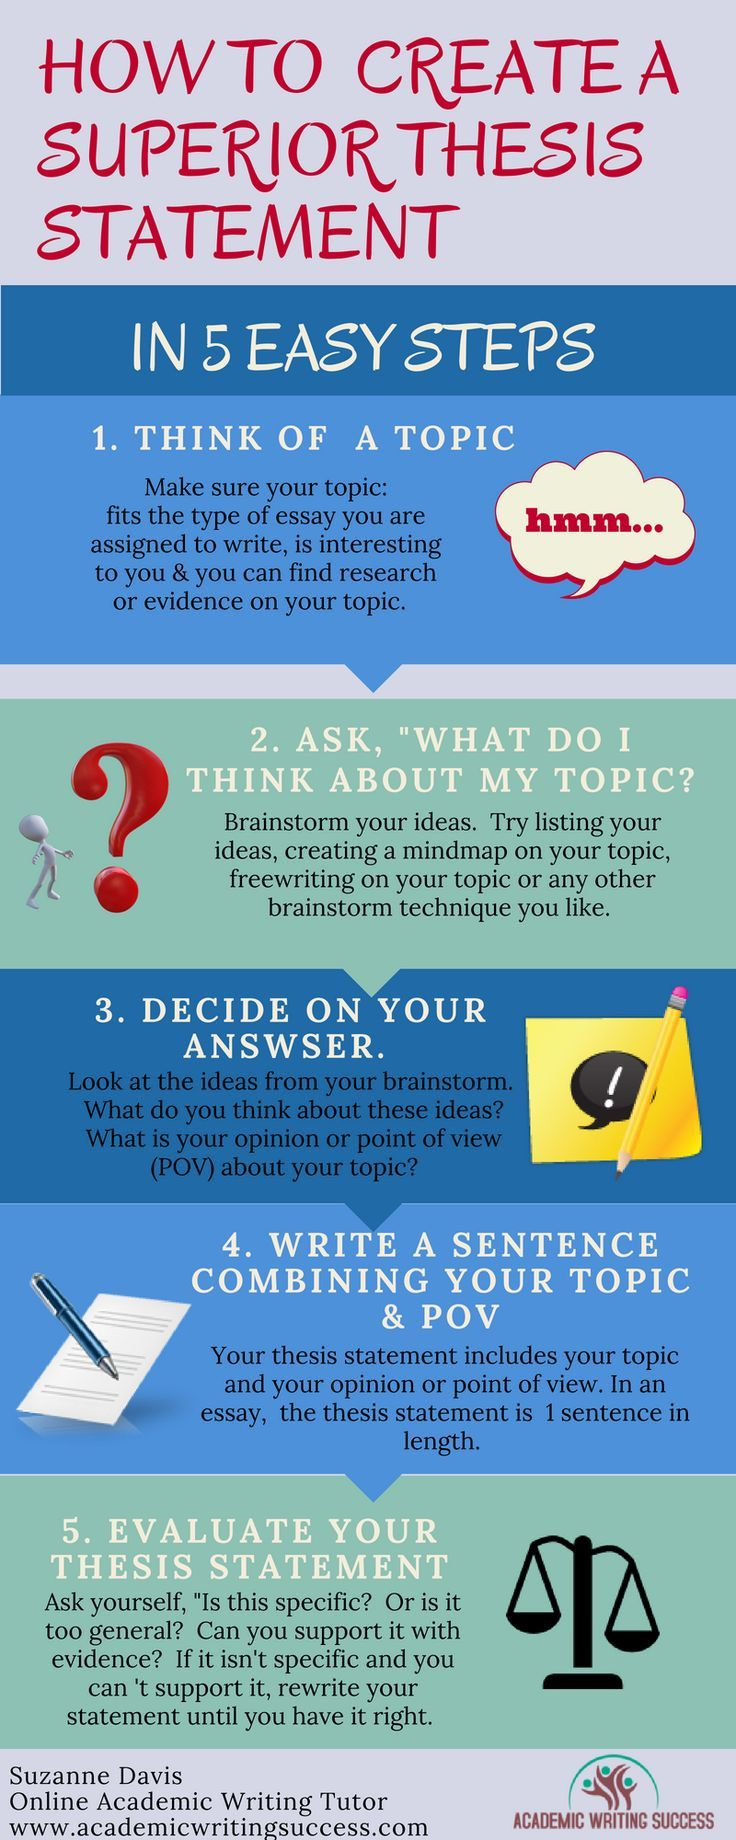 How To Create A Superior Thesis Statement In 5 Easy Steps - Academic  Writing Success | Thesis Statement, Academic Writing, Thesis Writing